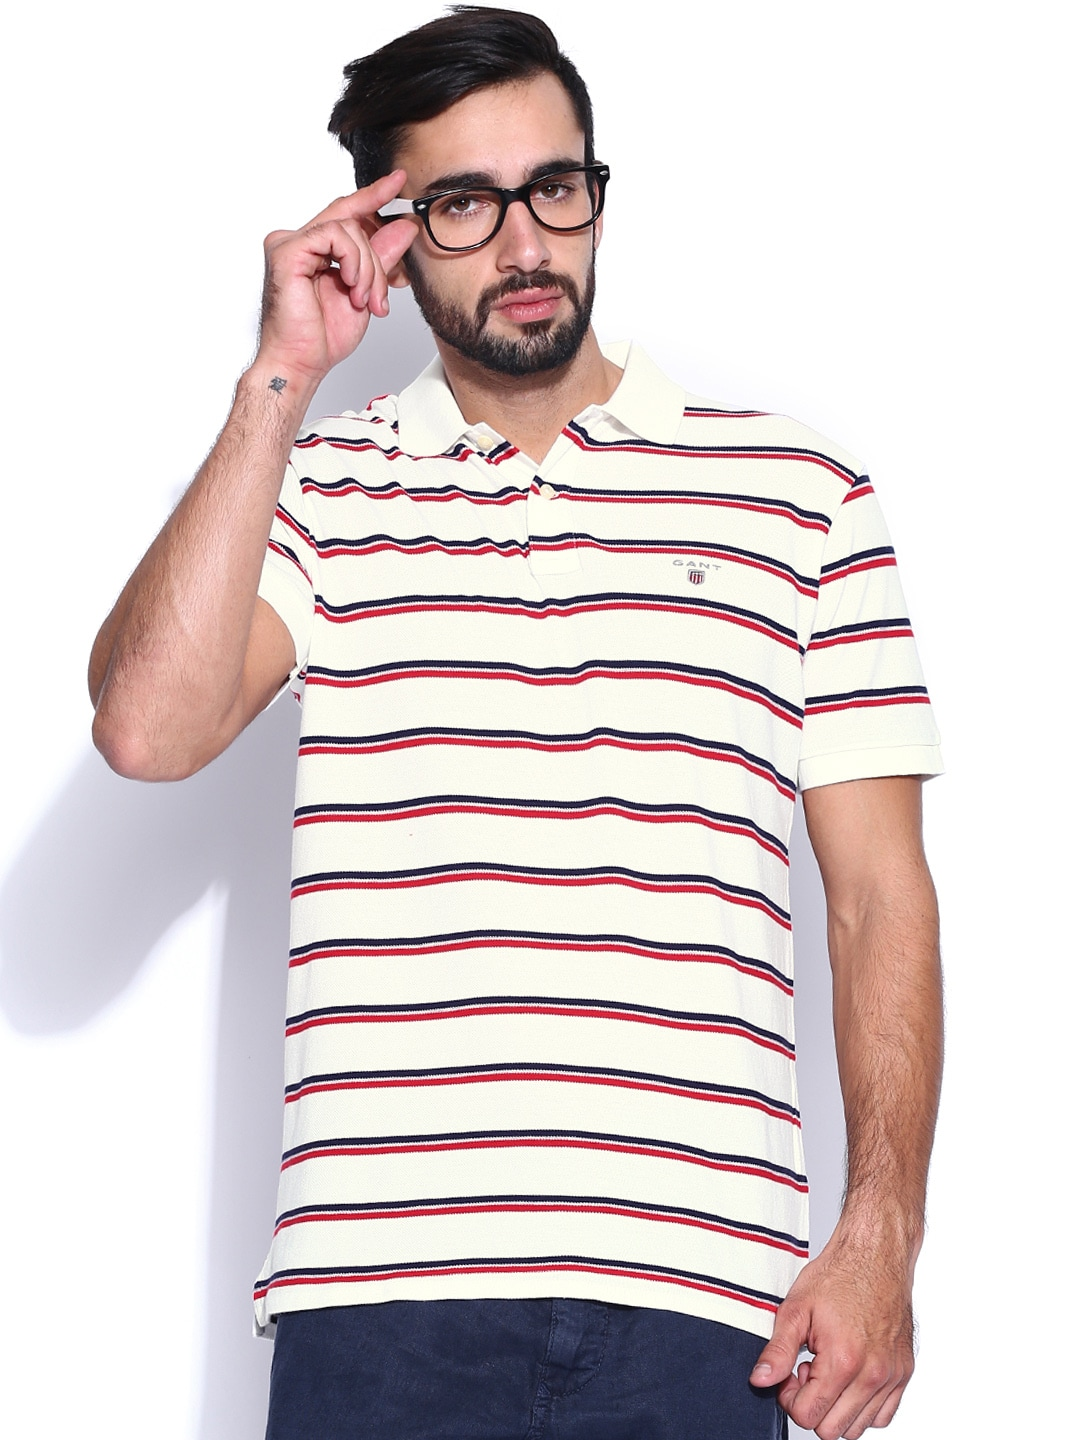 Buy gant off white red striped pique polo t shirt 289 for Red white striped polo shirt